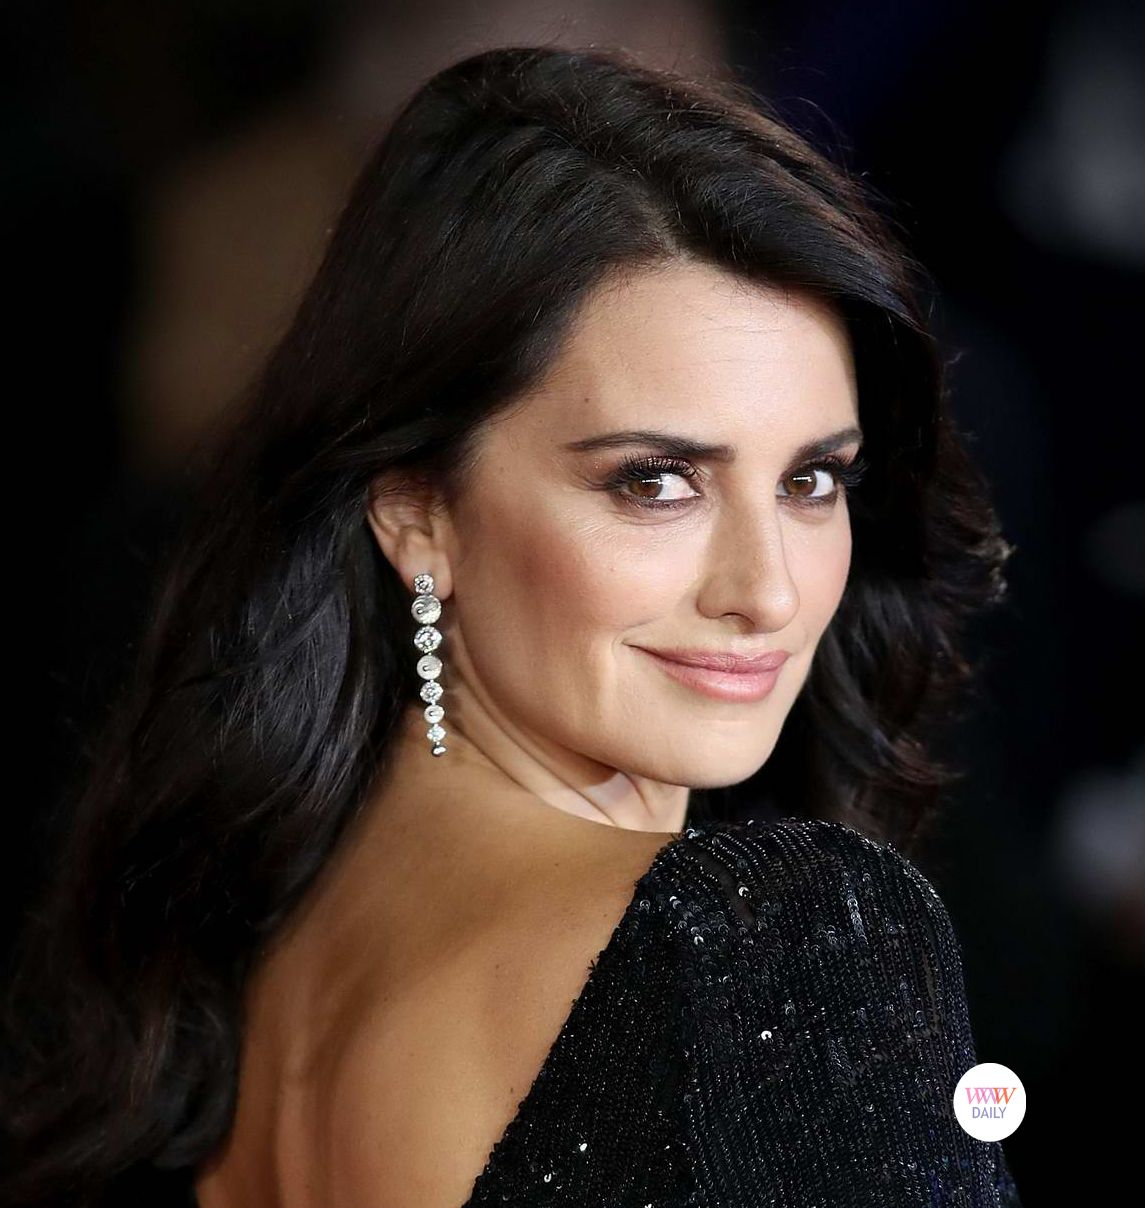 f9b7080a5d2be BEST OF: Celebrity Jewelry Week Round-up November 7th | PENELOPE ...